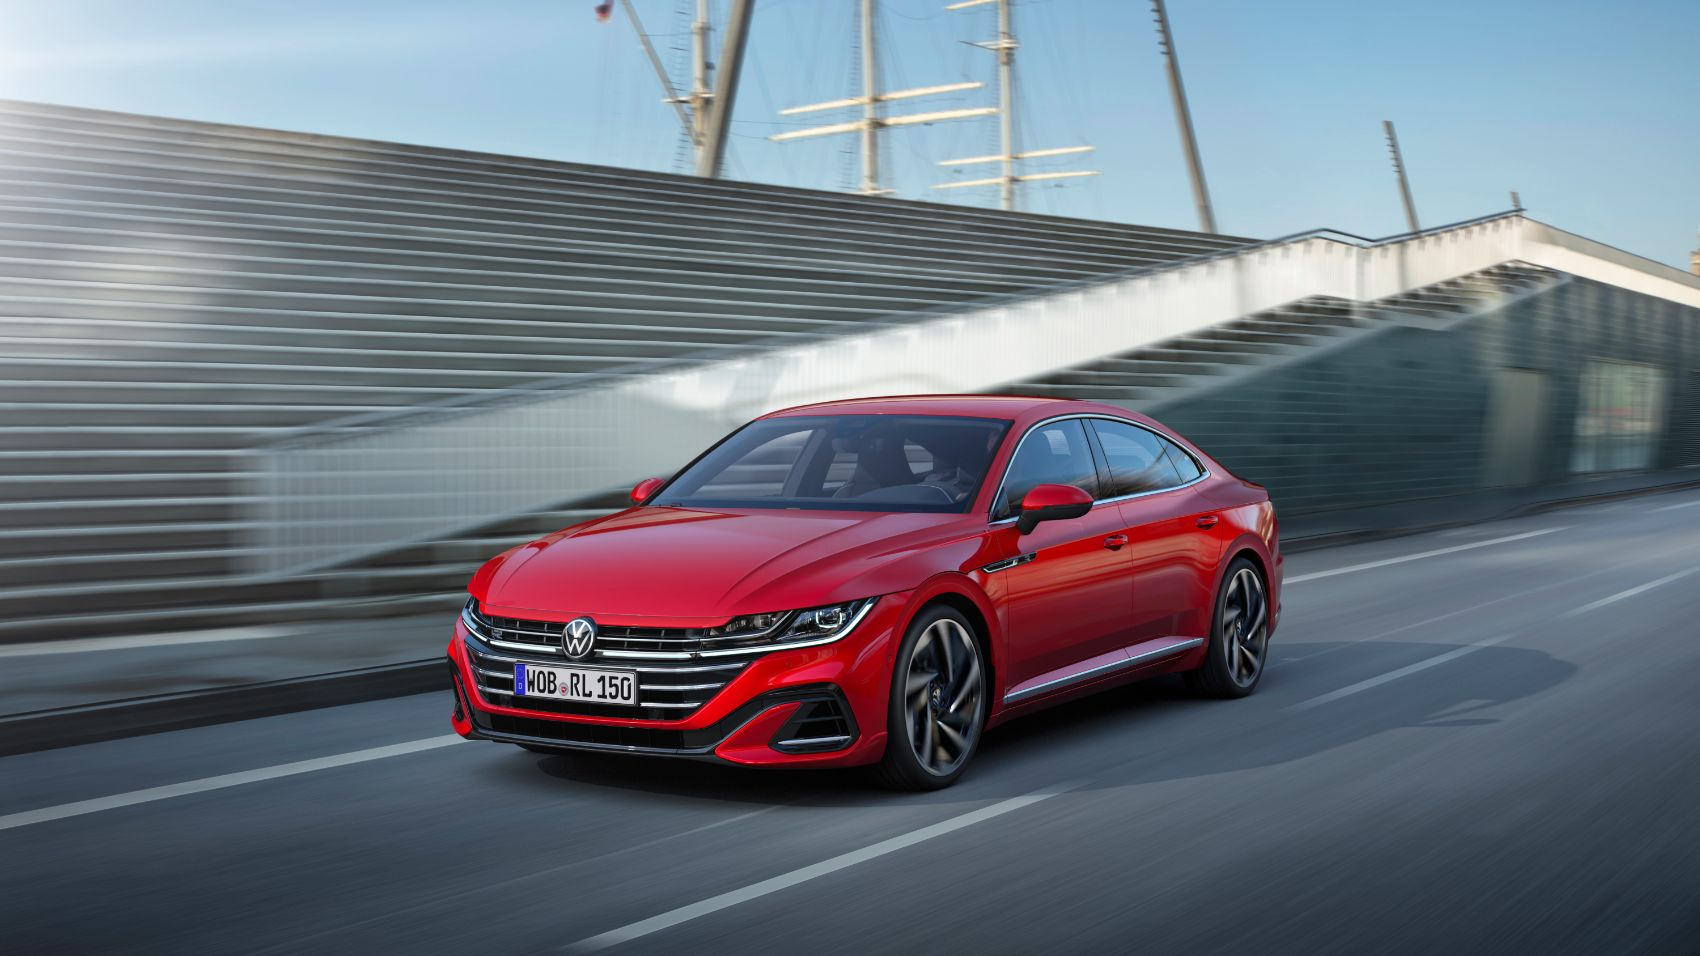 2021 VW Arteon: A Complete Look At The Pricing & Trim Levels